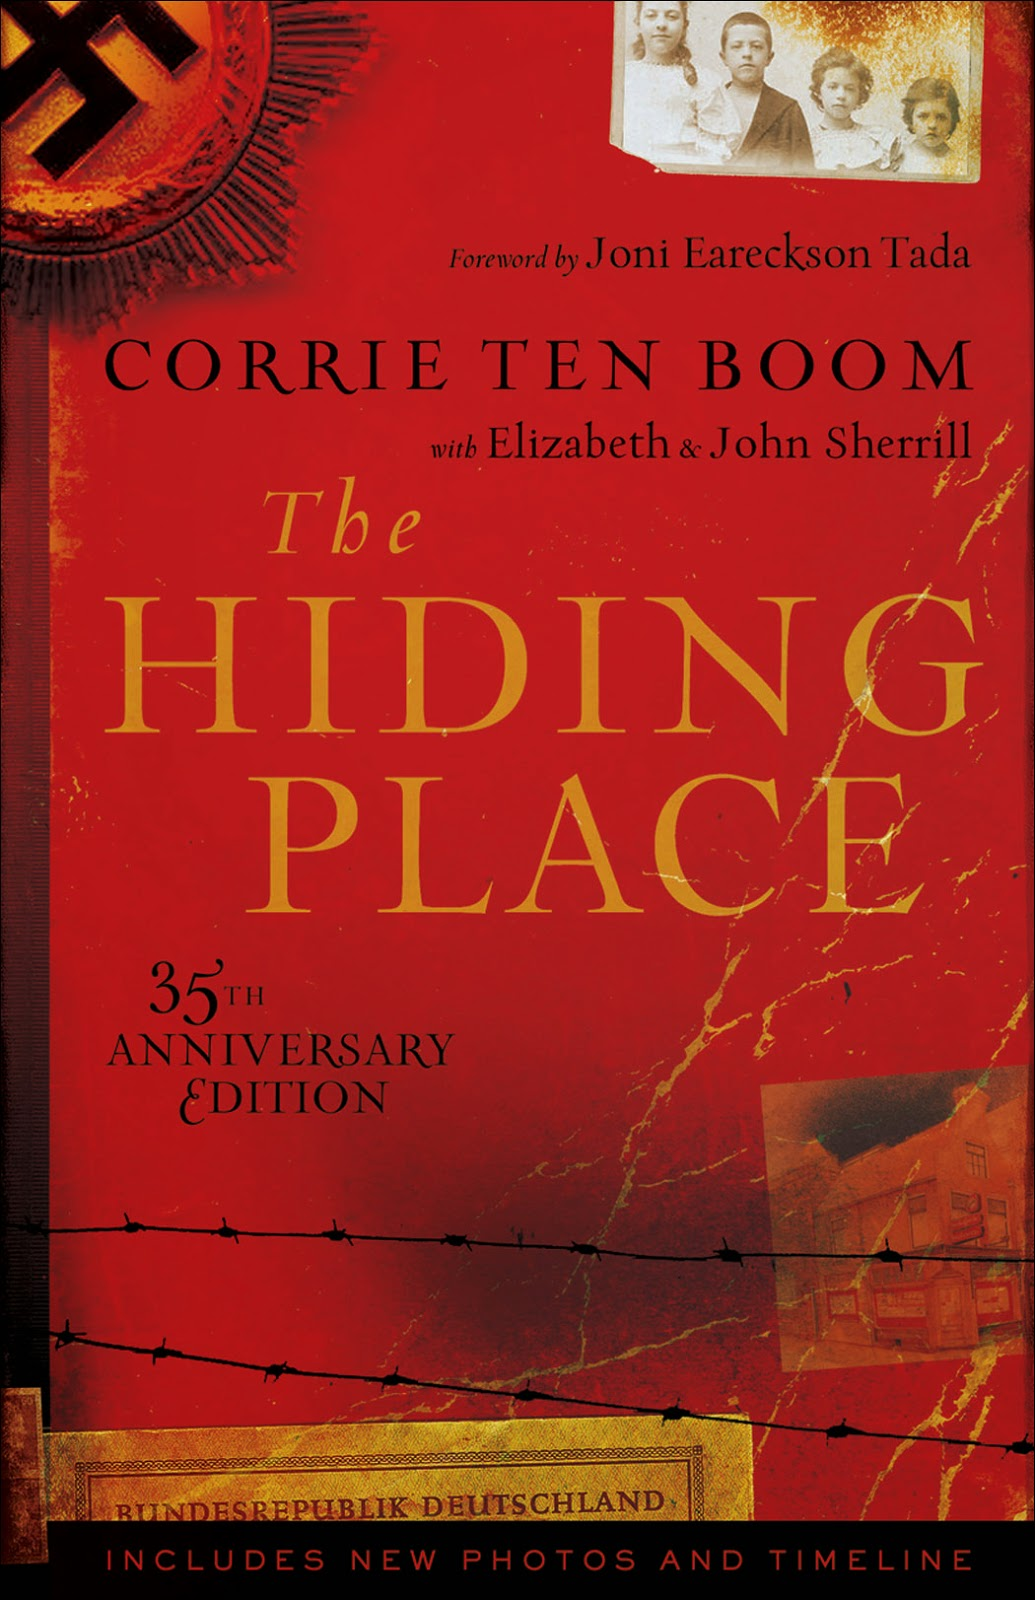 http://www.bookdepository.com/Hiding-Place-Corrie-Ten-Boom/9780800794057/?a_aid=jbblkh